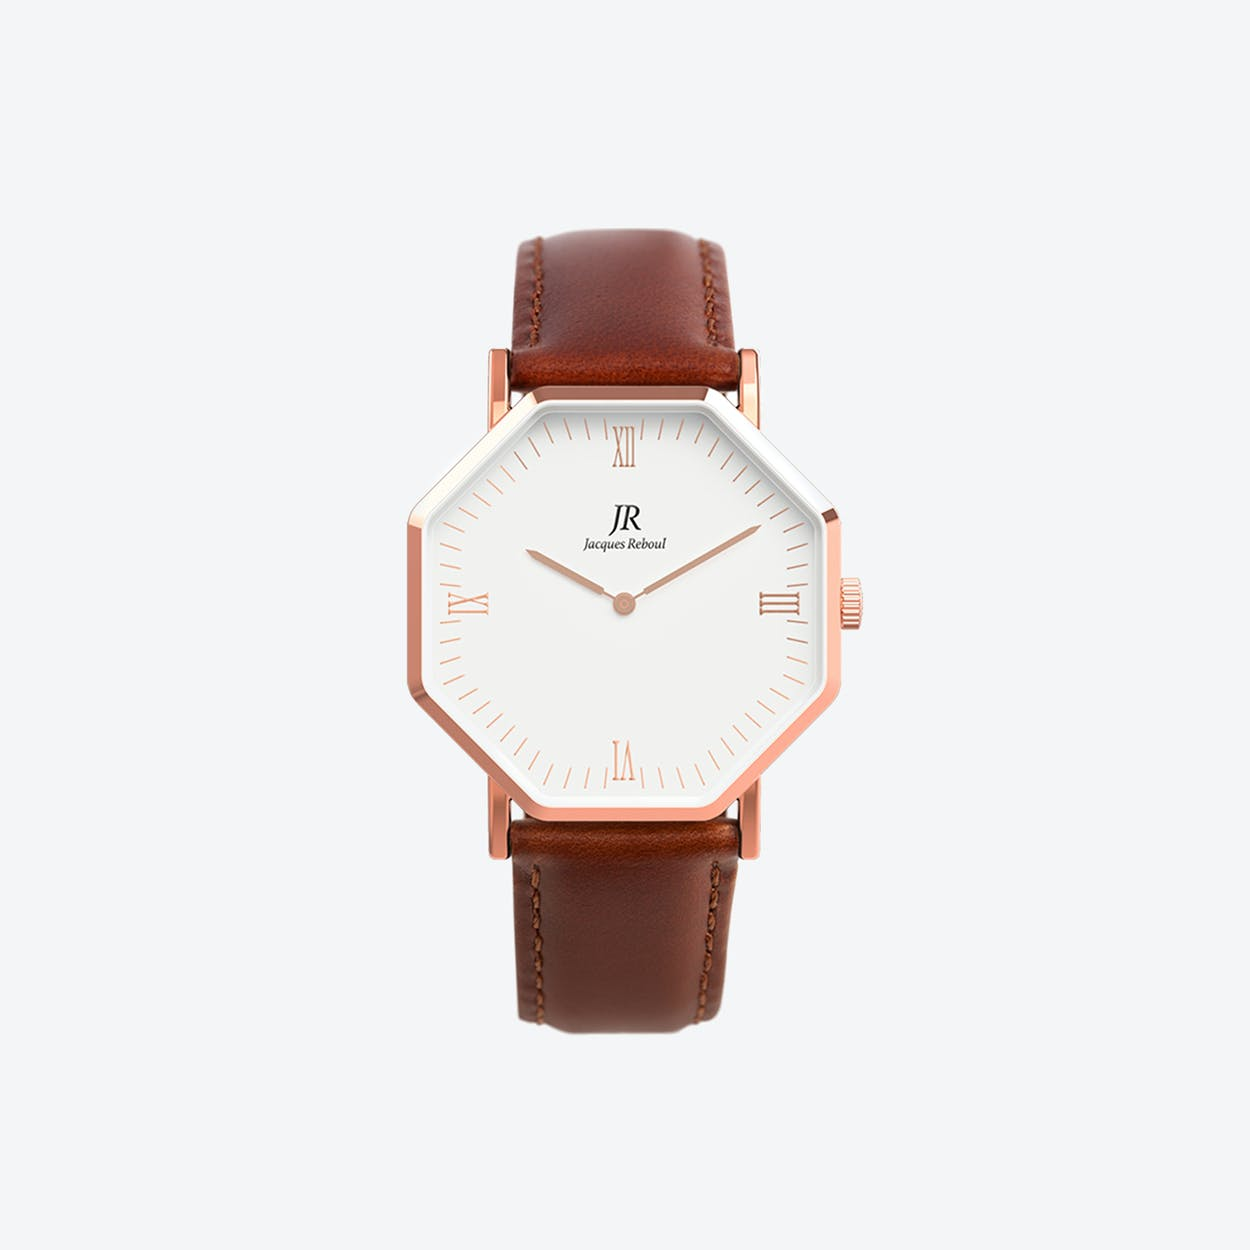 Lumiere Rose Gold Hexagonal Watch with Dk Brown Leather Strap 44mm